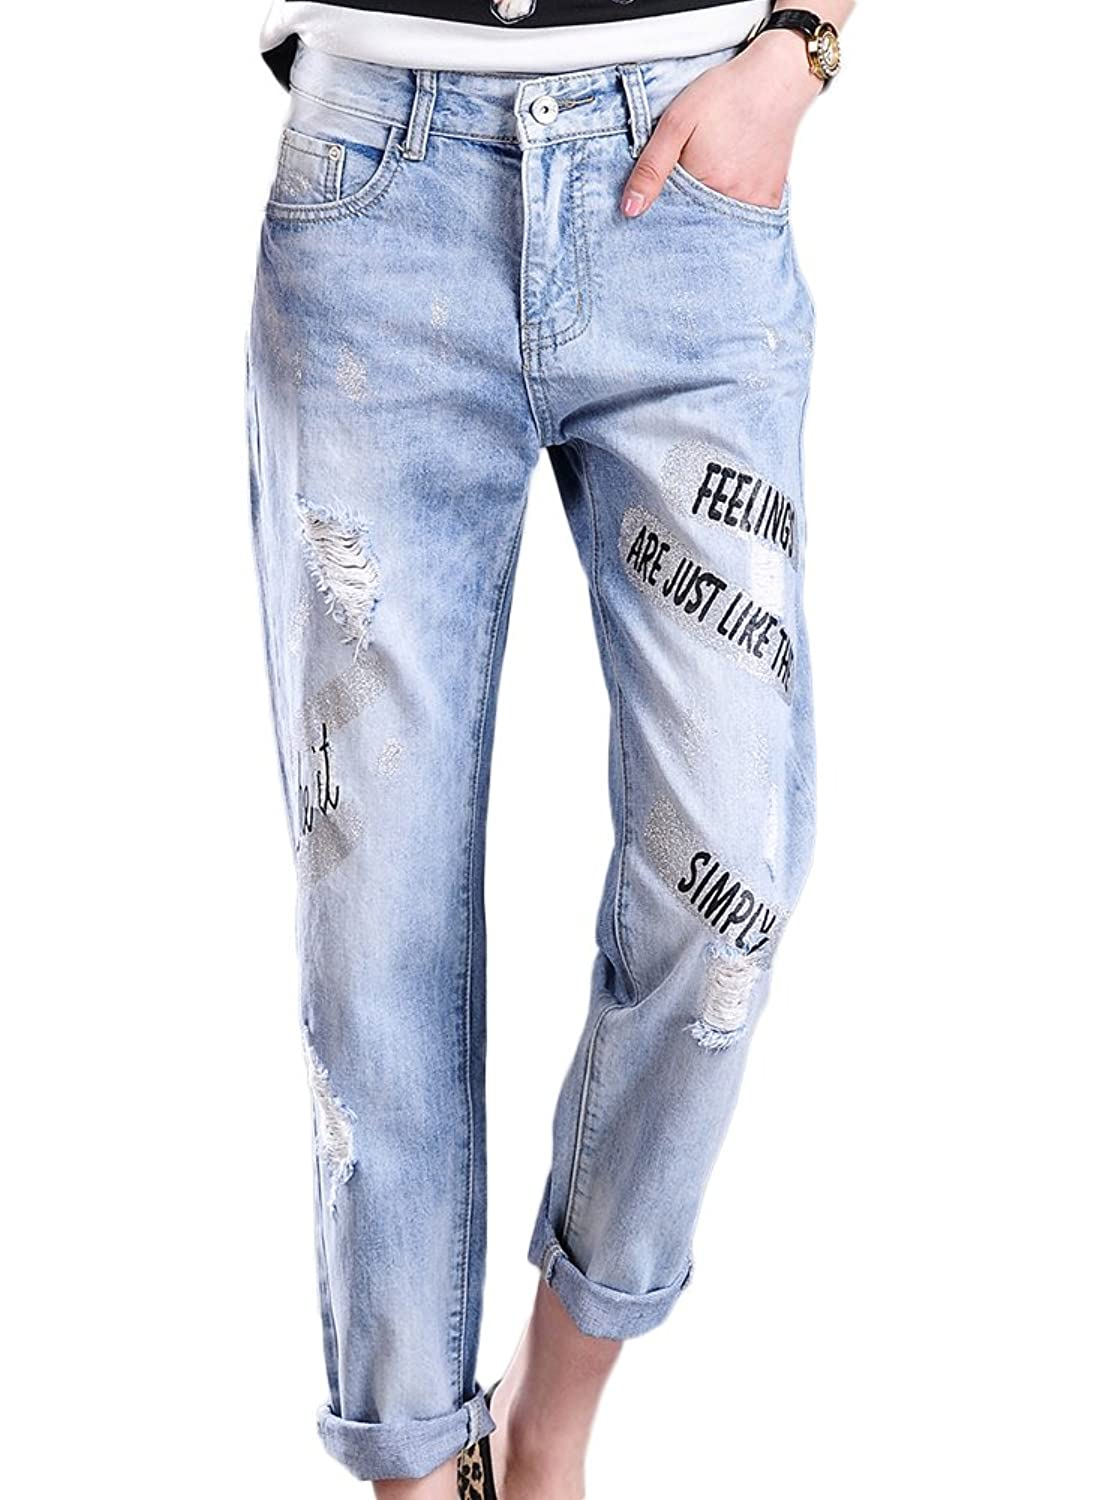 Chickle Women's Loose 100 Cotton Sayings Ripped Distressed Jeans